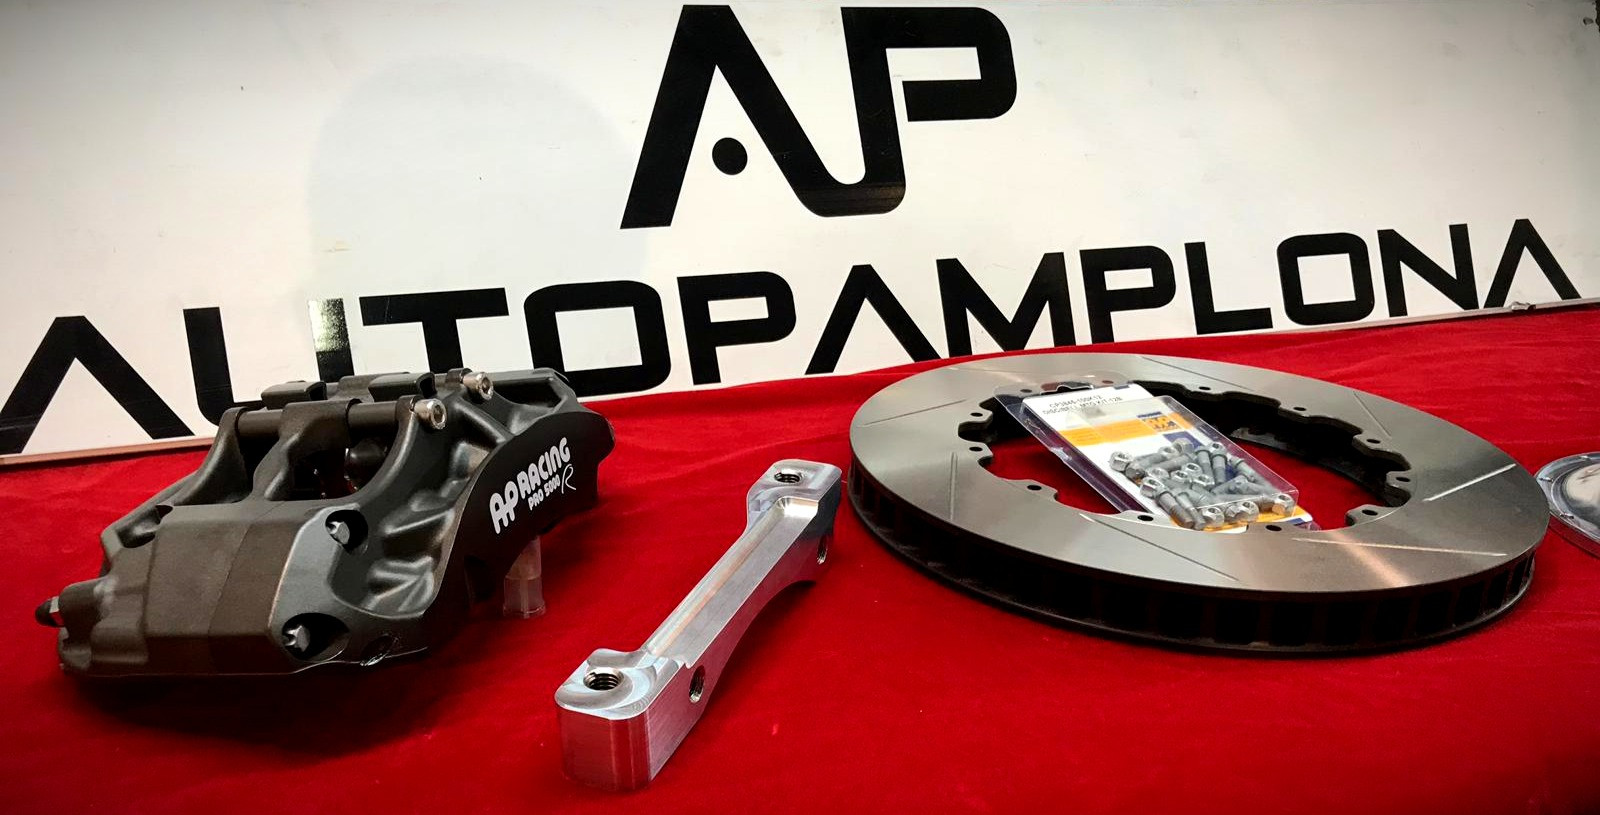 Developed by Auto Pamplona & AP Racing